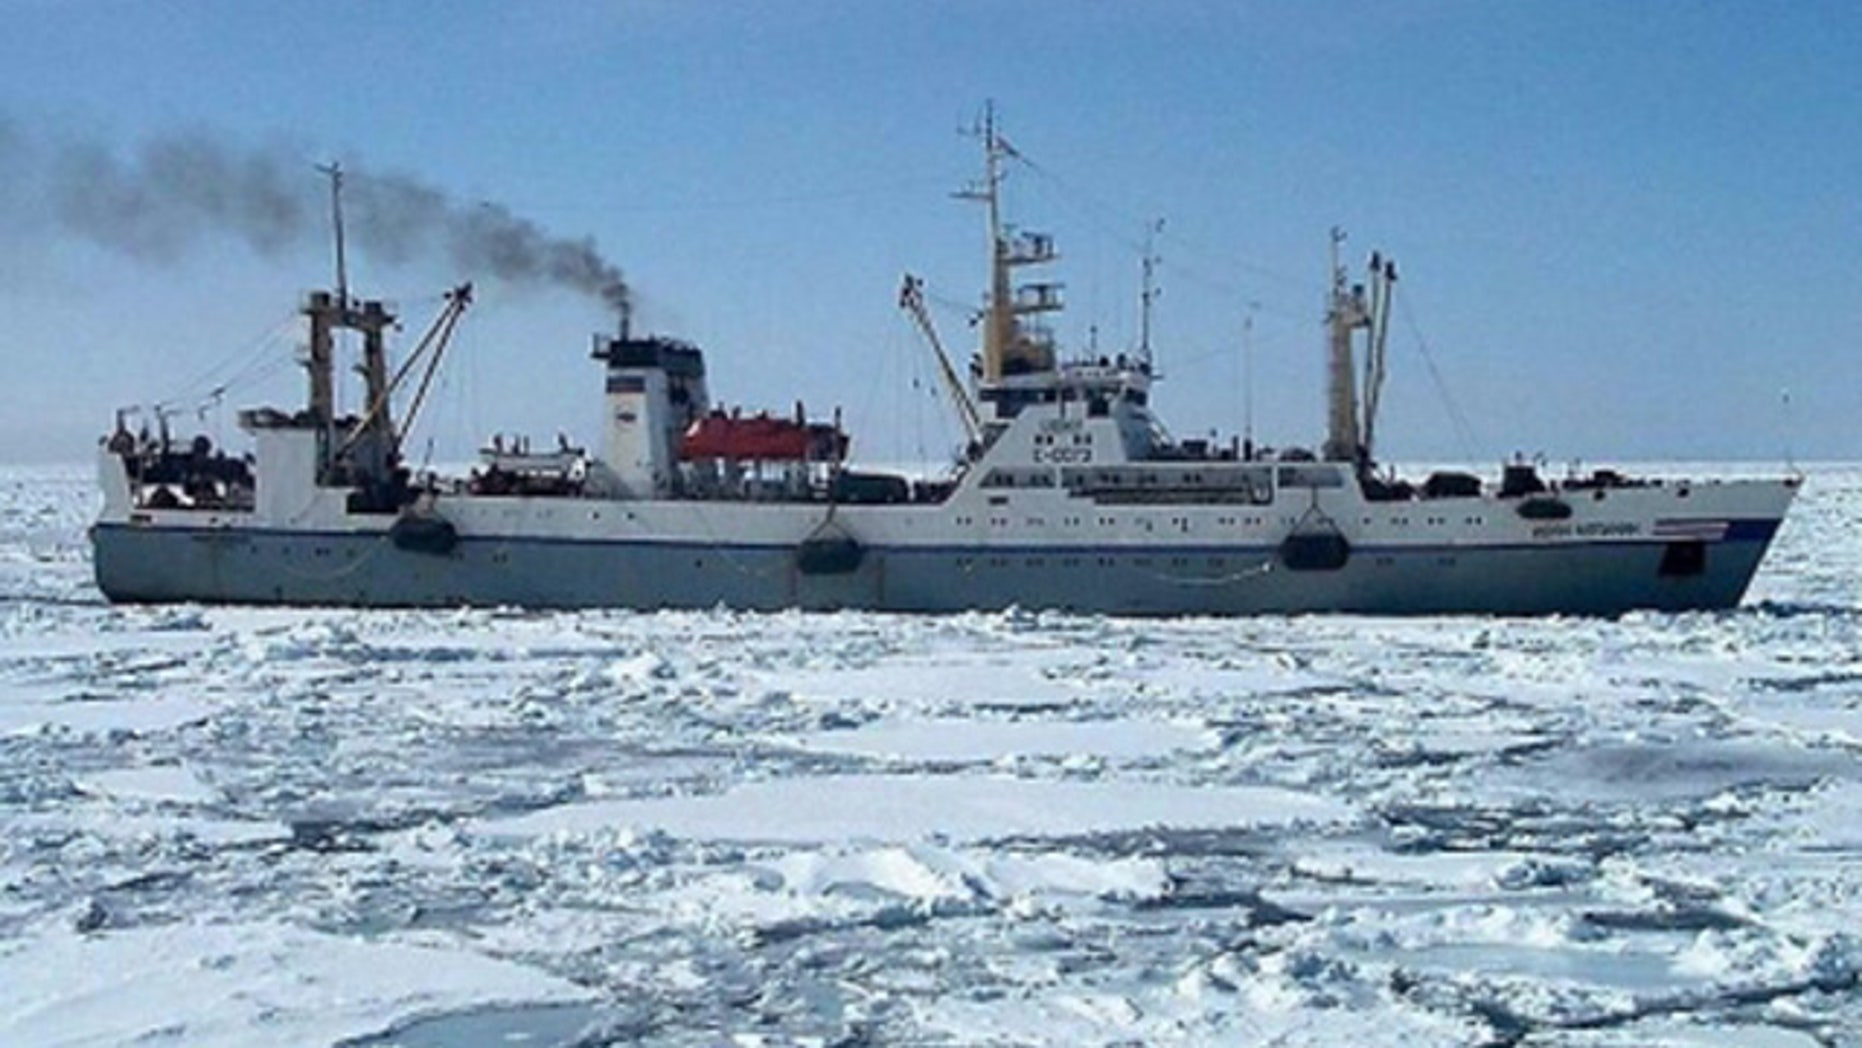 In this undated photo provided by Russian Emergency Situations Ministry, a Russian trawler, the same type as Dalny Vostok, is seen in an undisclosed location. (AP Photo/Russian Emergency Situations Ministry Press Service)